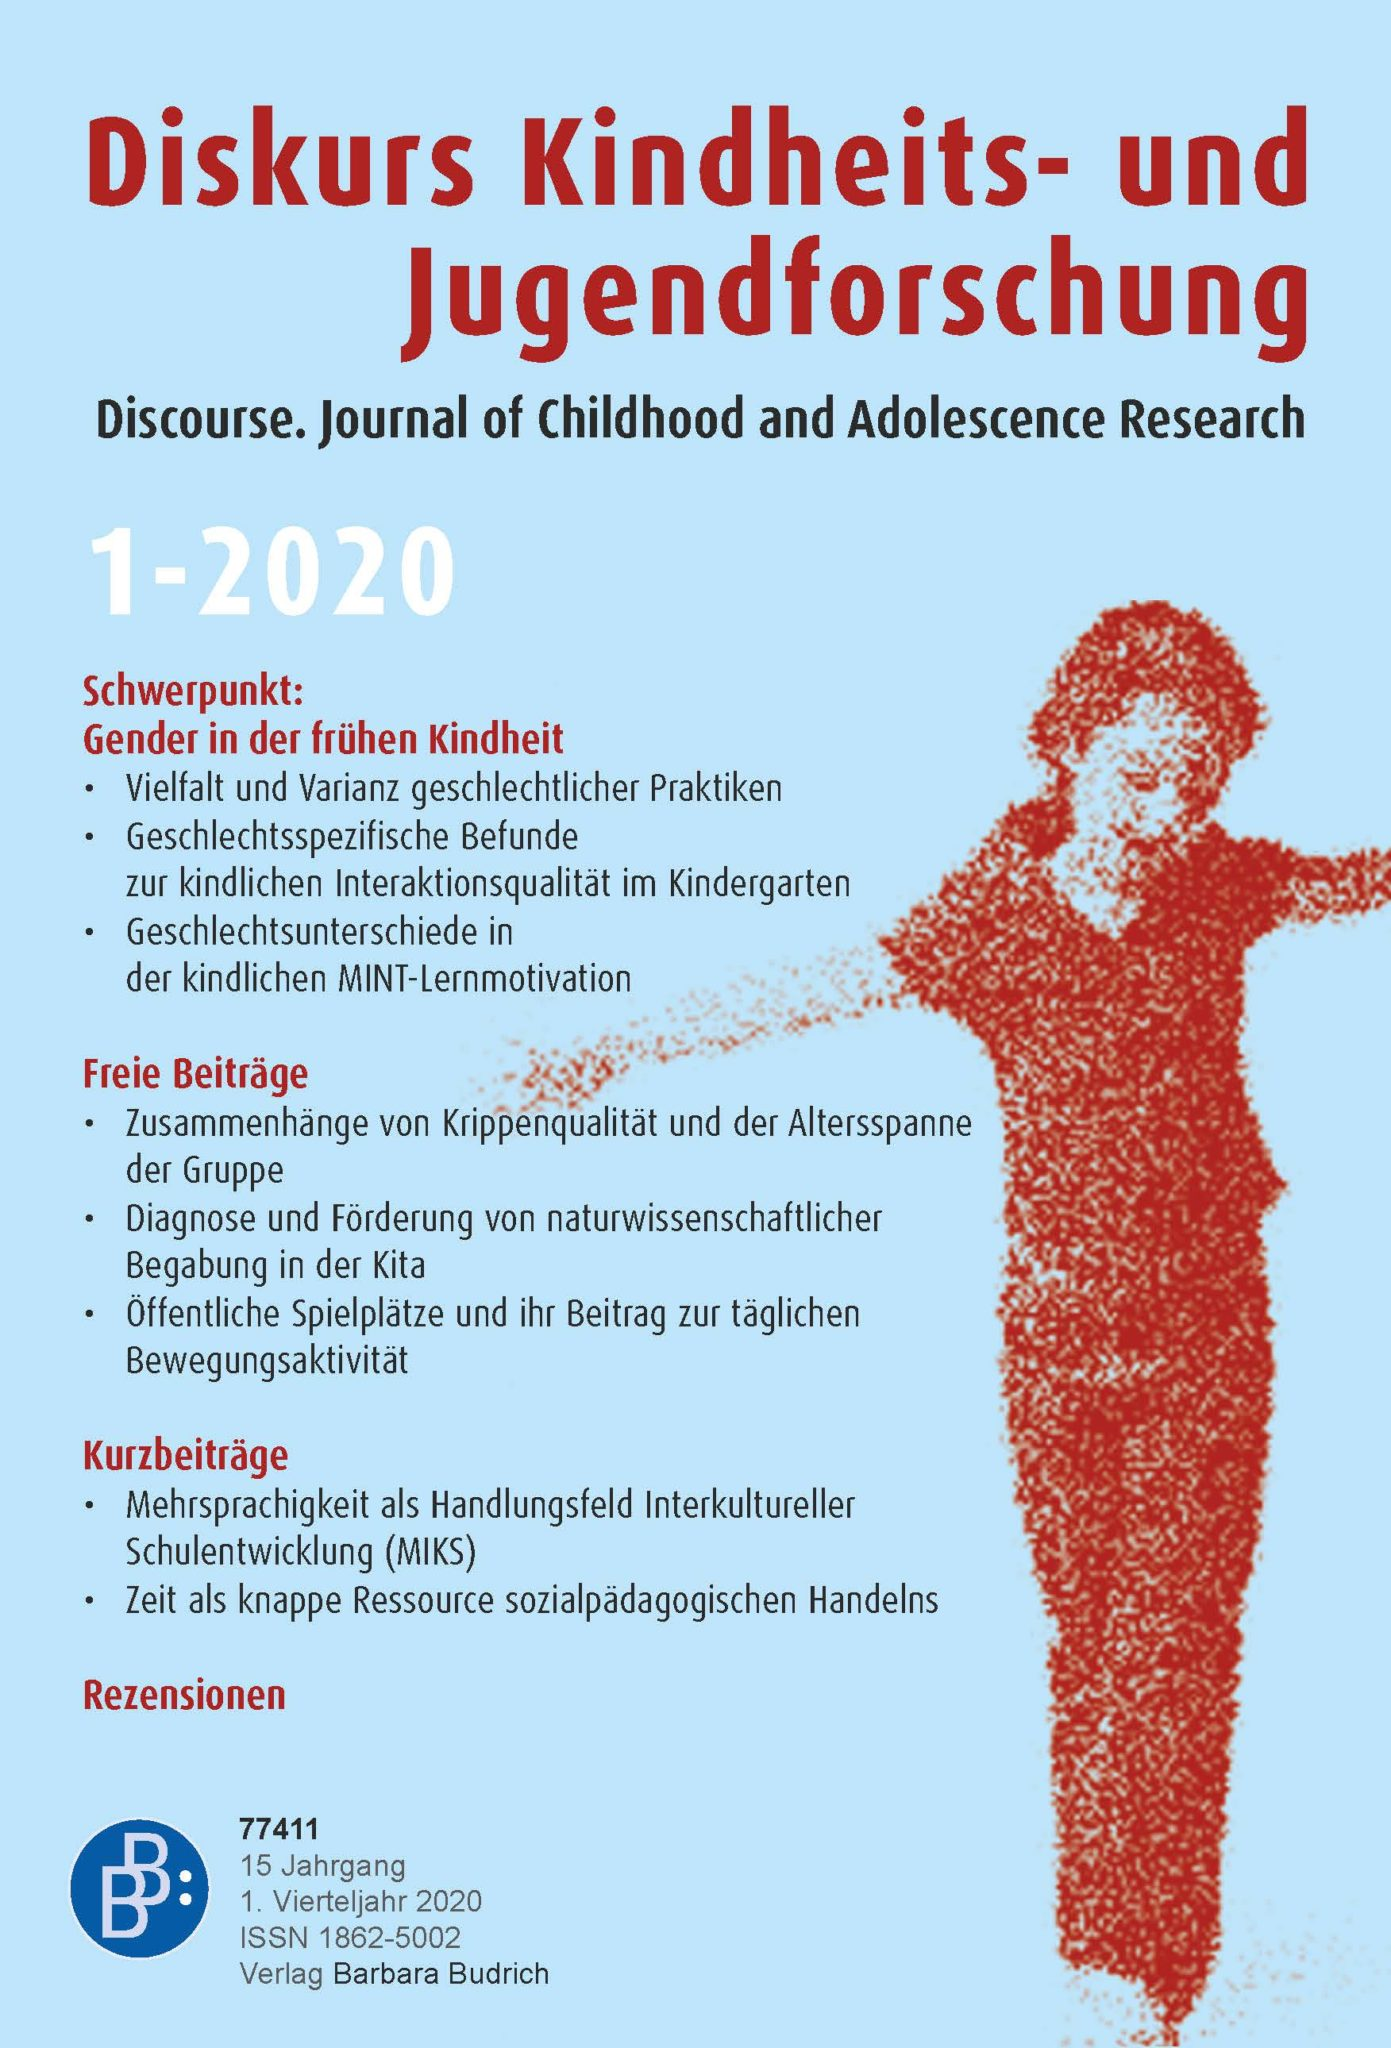 Diskurs Kindheits- und Jugendforschung / Discourse. Journal of Childhood and Adolescence Research 1-2020: Gender in der frühen Kindheit